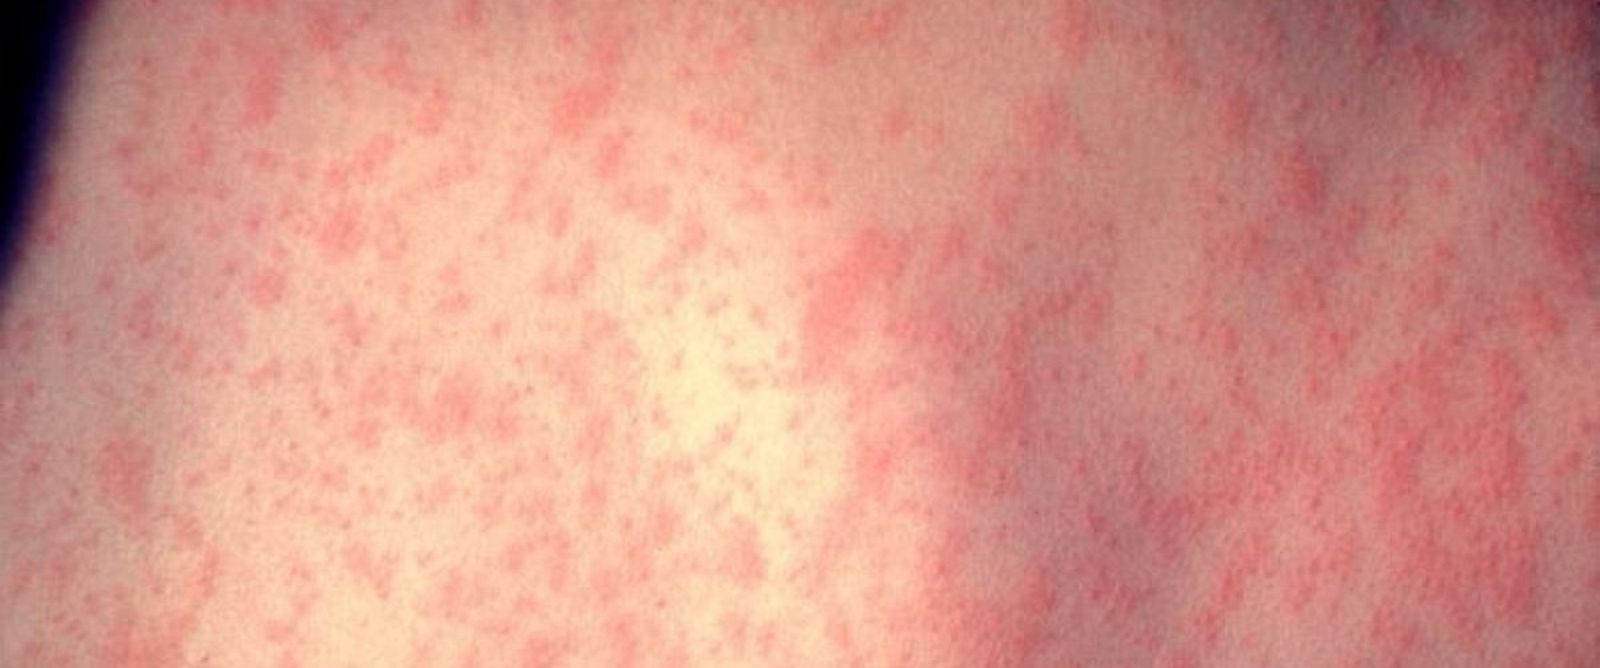 PHOTO: Measles outbreaks have occurred in multiple states since the beginning of the year.